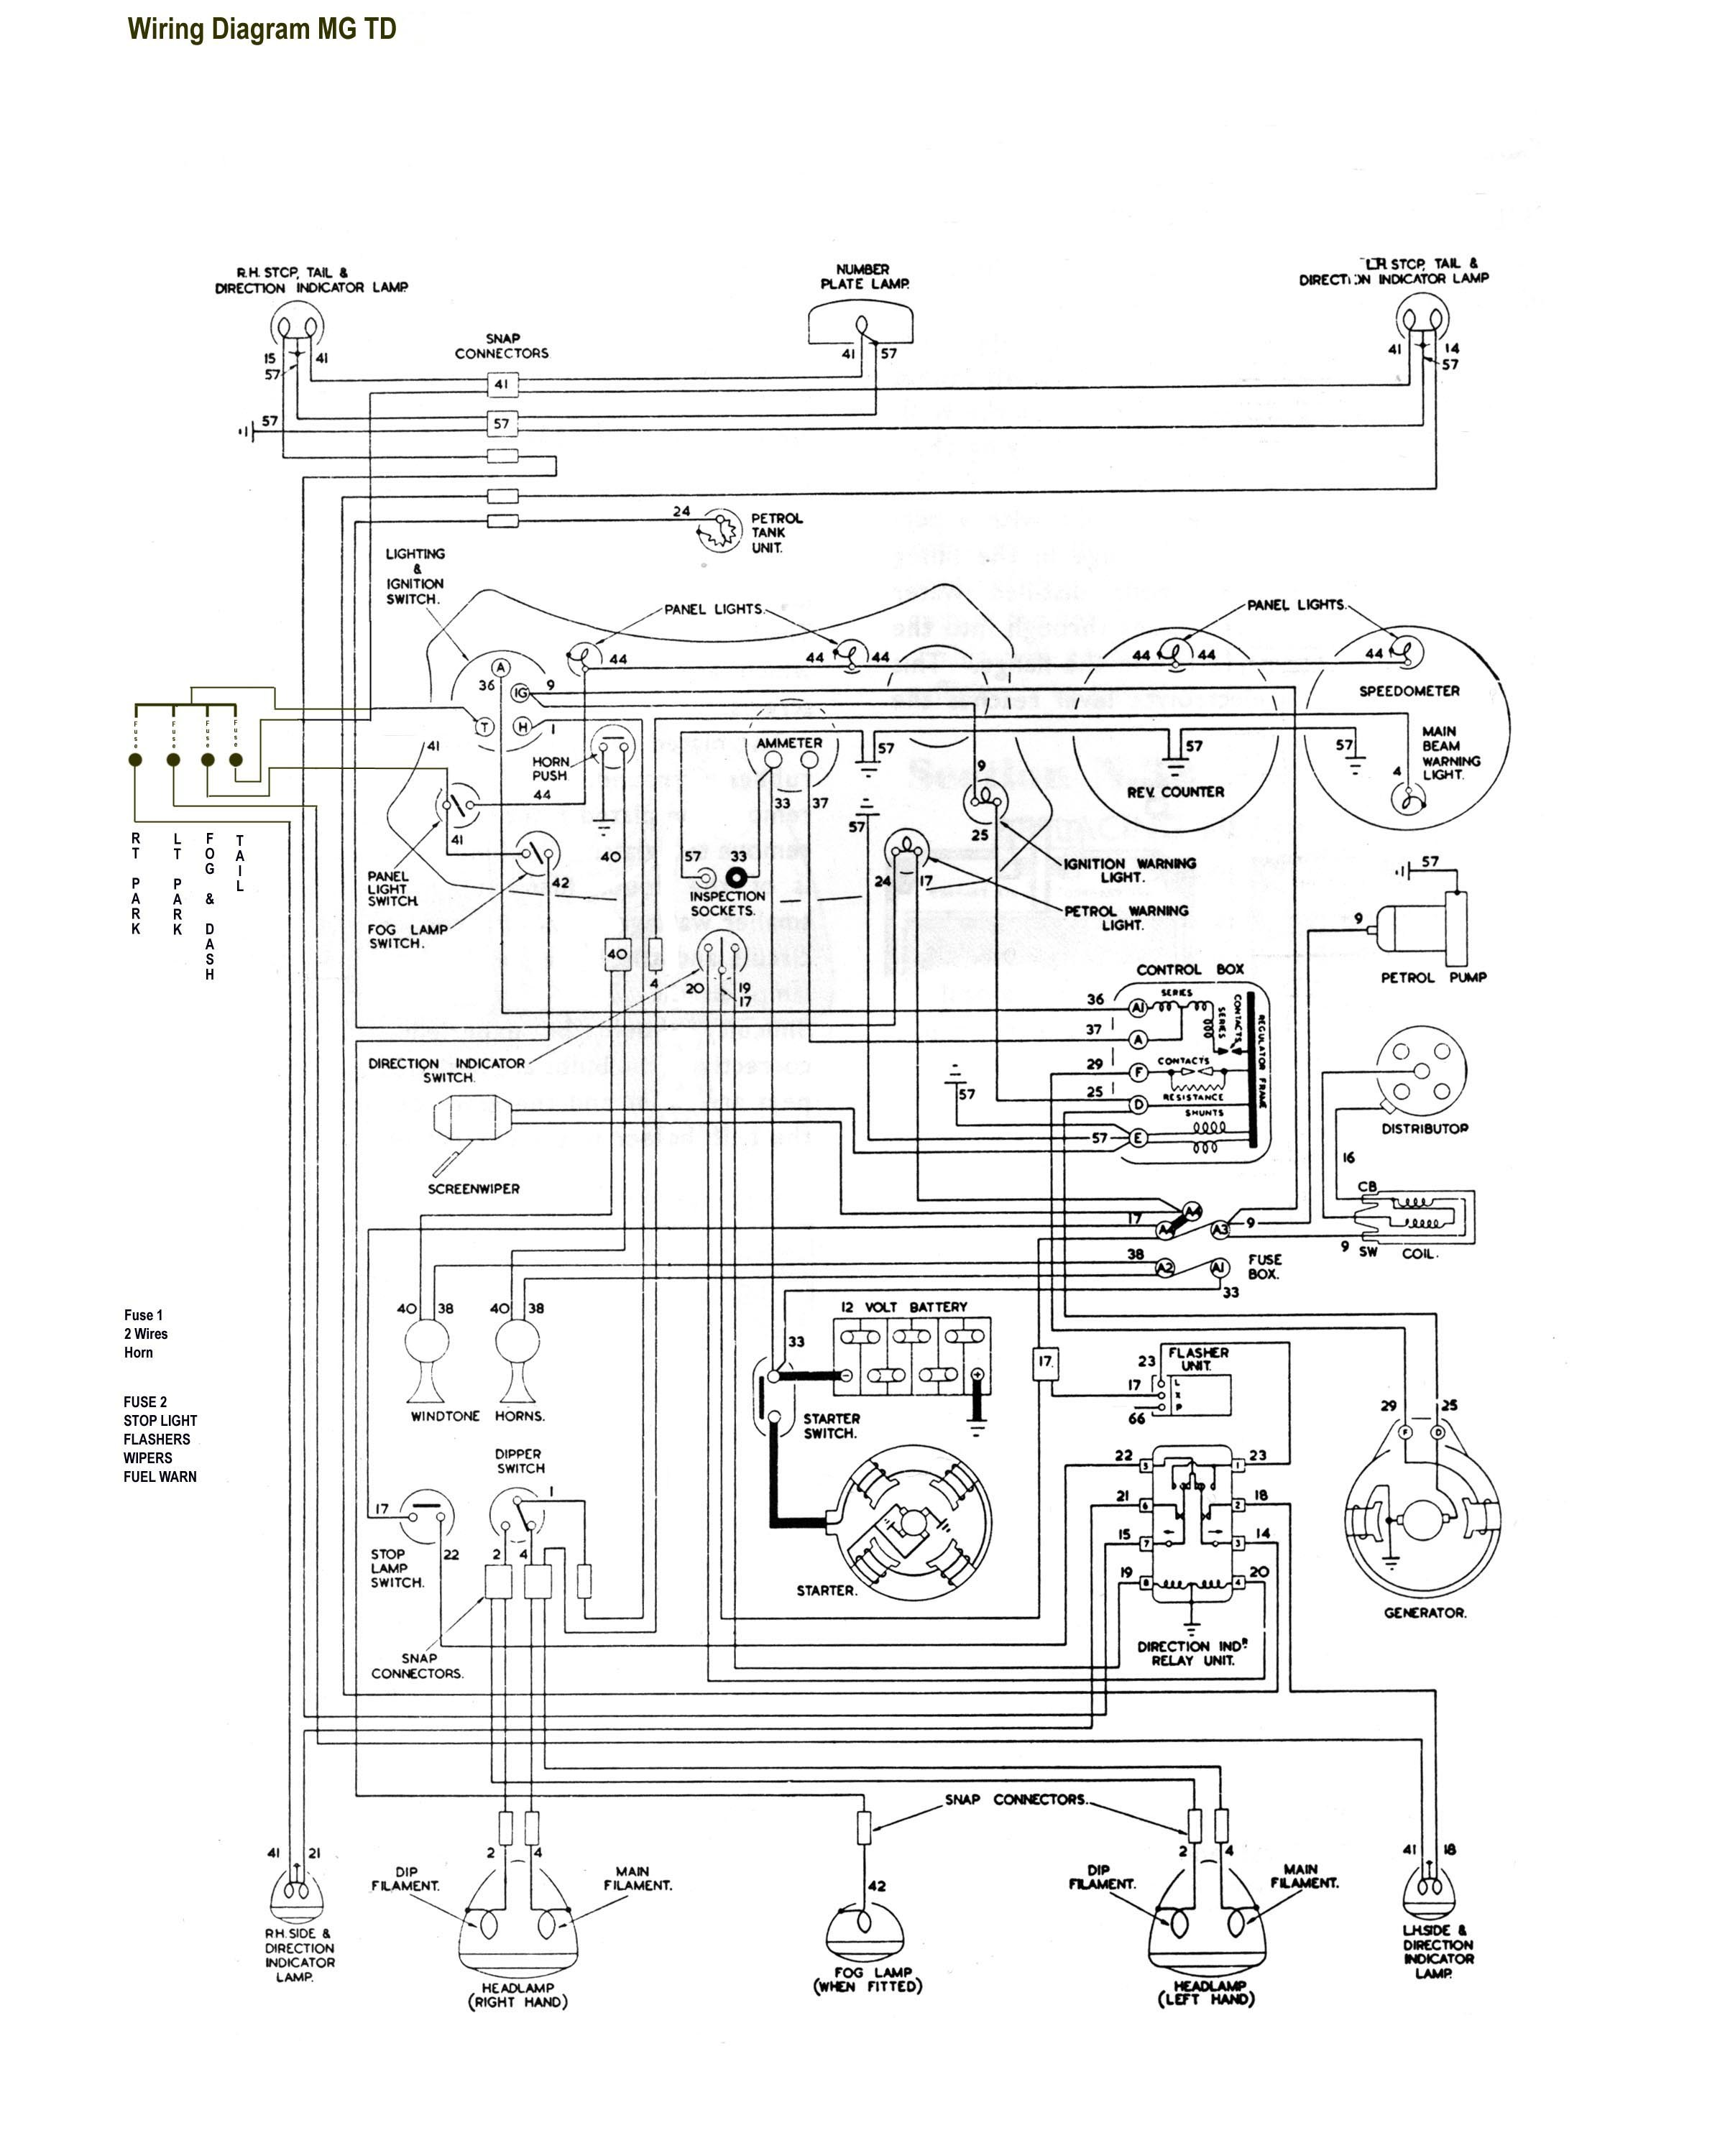 1952 Mg Td Wiring Harness - Vss Wire Diagram for Wiring Diagram SchematicsWiring Diagram Schematics